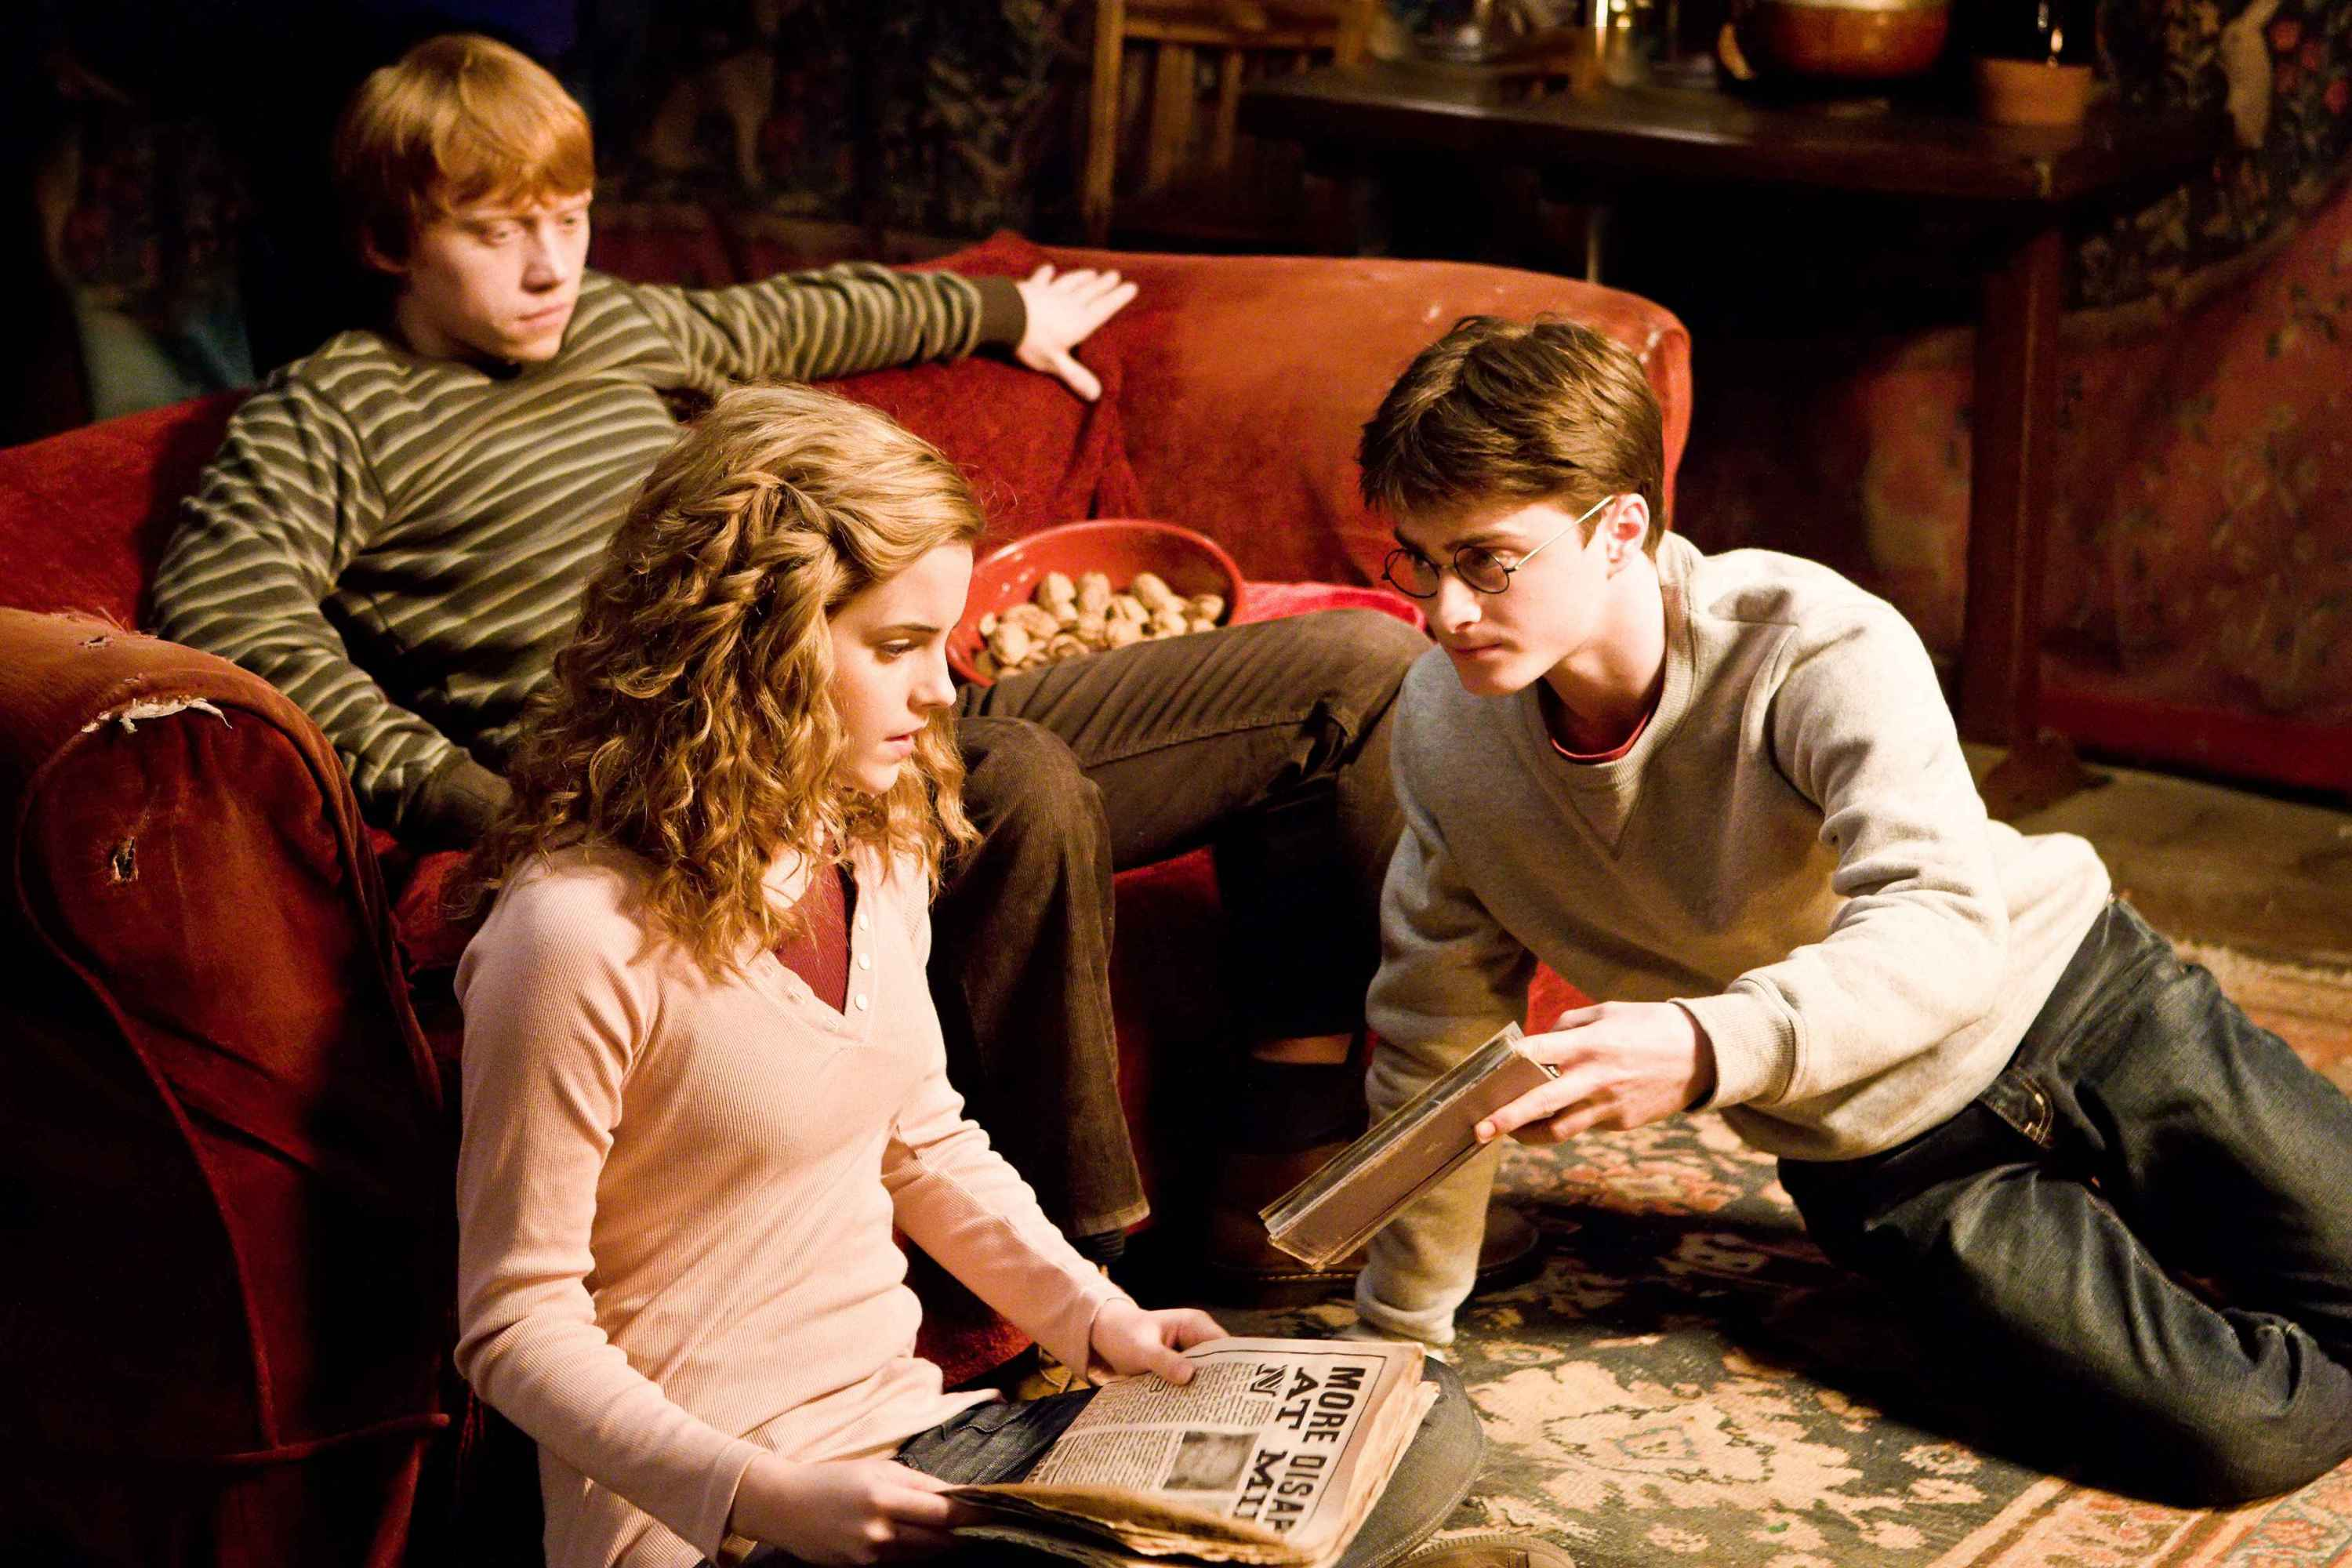 """(L-r) EMMA WATSON as Hermione Granger, DANIEL RADCLIFFE as Harry Potter and RUPERT GRINT as Ron Weasley in Warner Bros. Pictures' fantasy """"Harry Potter and The Half-Blood Prince."""" PHOTOGRAPHS TO BE USED SOLELY FOR ADVERTISING, PROMOTION, PUBLICITY OR REVIEWS OF THIS SPECIFIC MOTION PICTURE AND TO REMAIN THE PROPERTY OF THE STUDIO. NOT FOR SALE OR REDISTRIBUTION."""